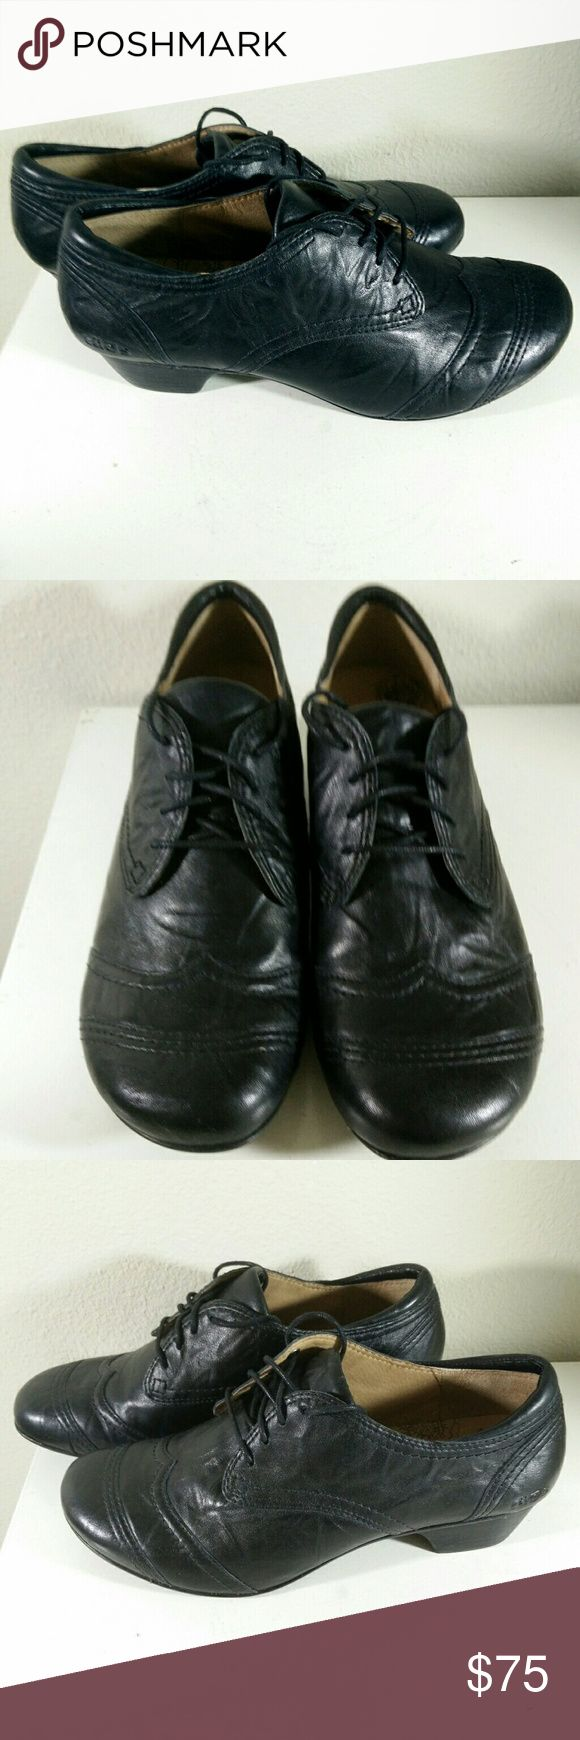 Taos Jive 2 Black Leather Oxford Shoes Great looking high end shoes - very comfortable and in beautiful condition with no flaws to note... Taos Footwear Shoes